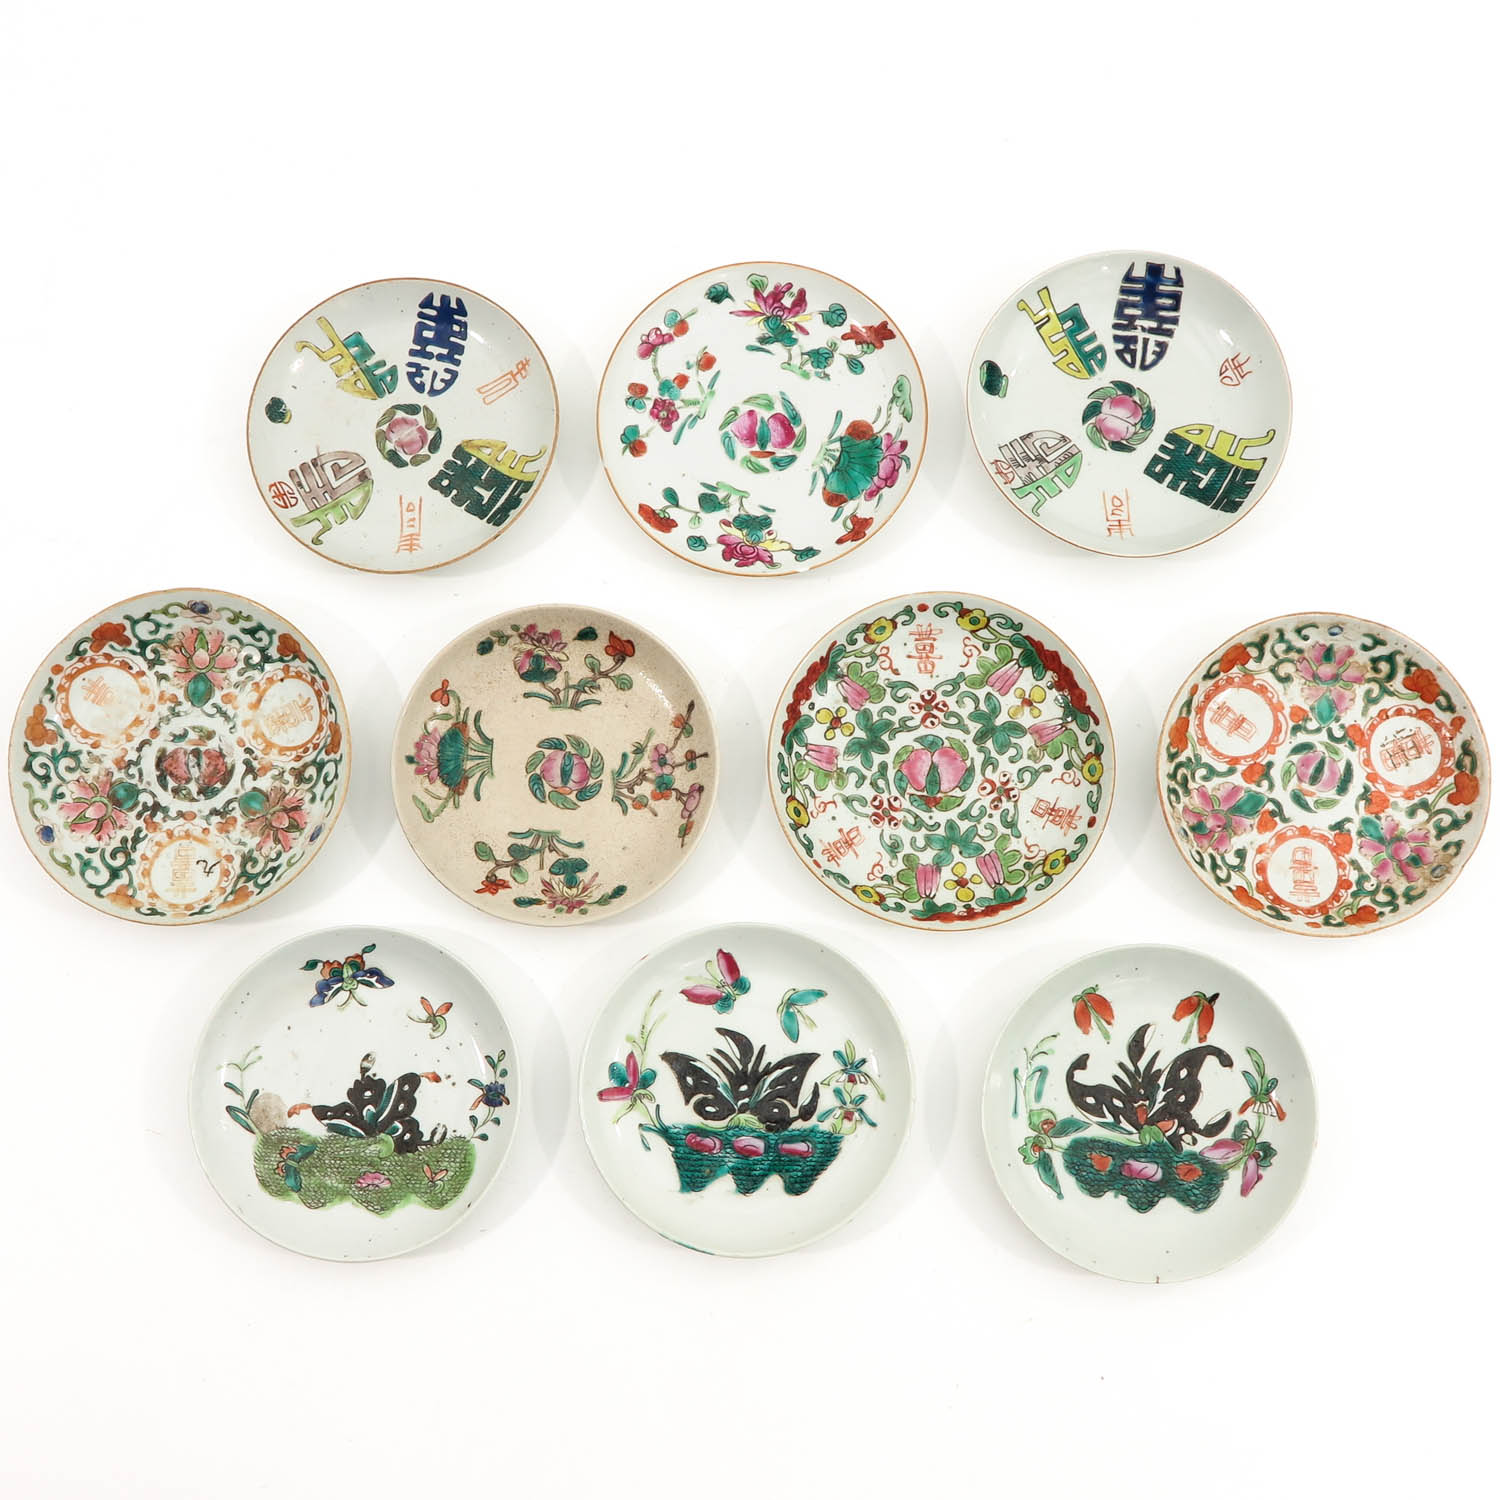 A Collection of 10 Polychrome Decor Plates